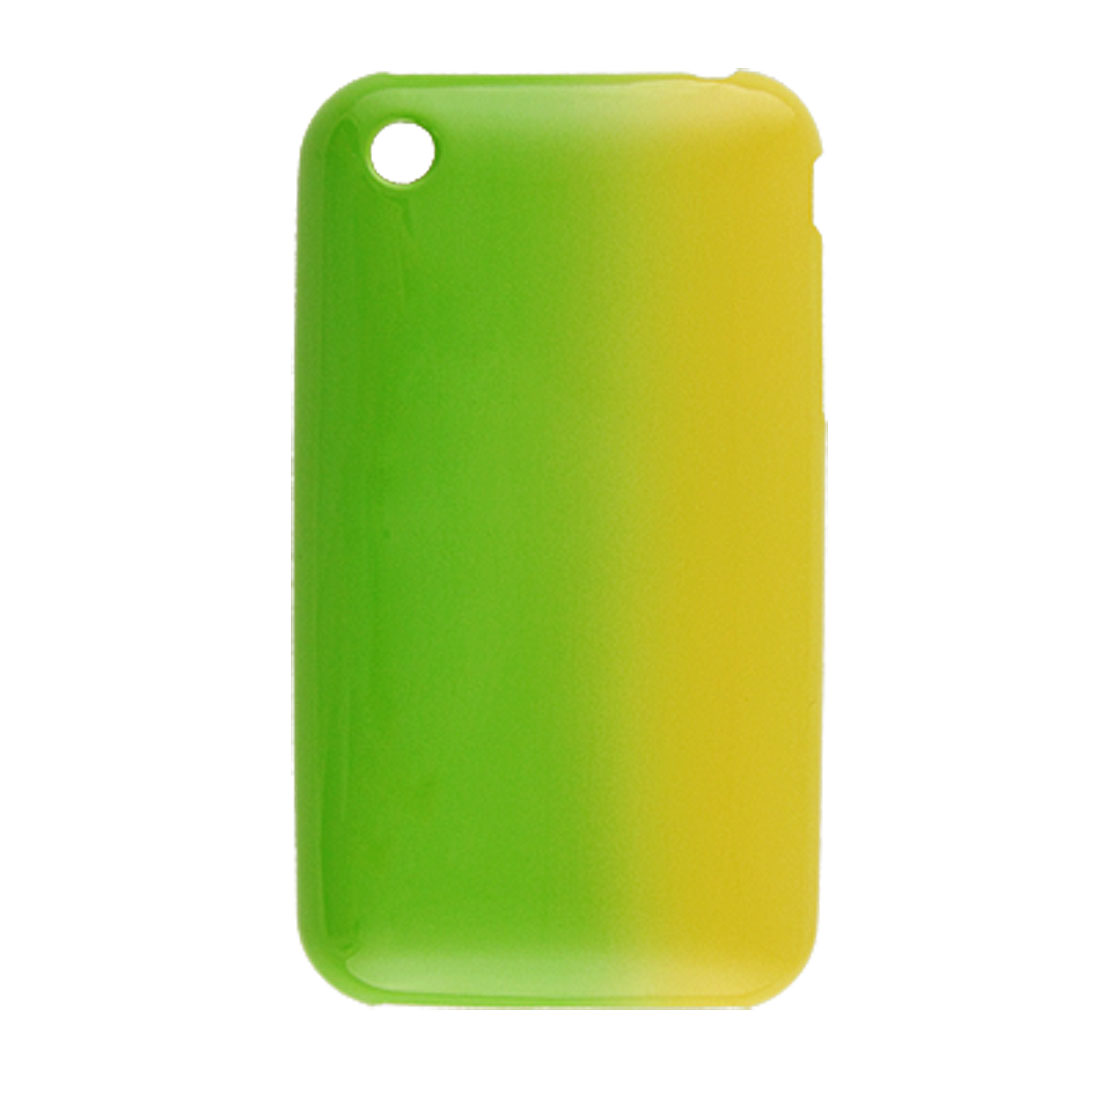 Green Yellow Hard Plastic Shell Cover for iPhone 3G